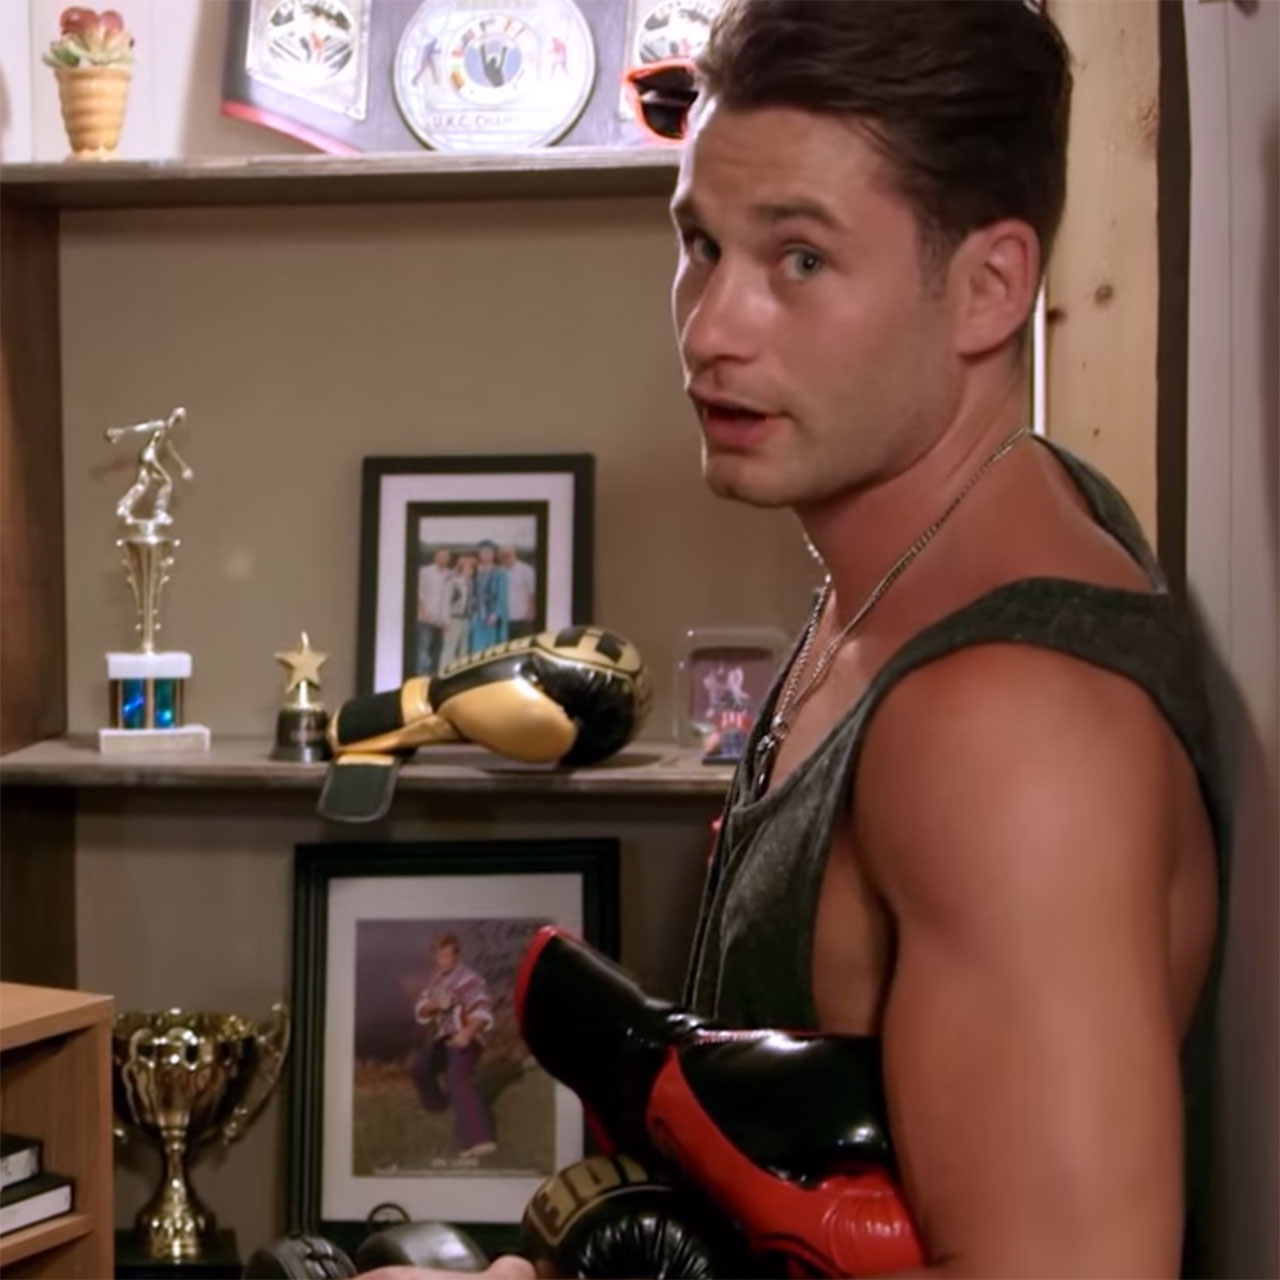 Chris Algieri has a bachelor pad in his parents' basement